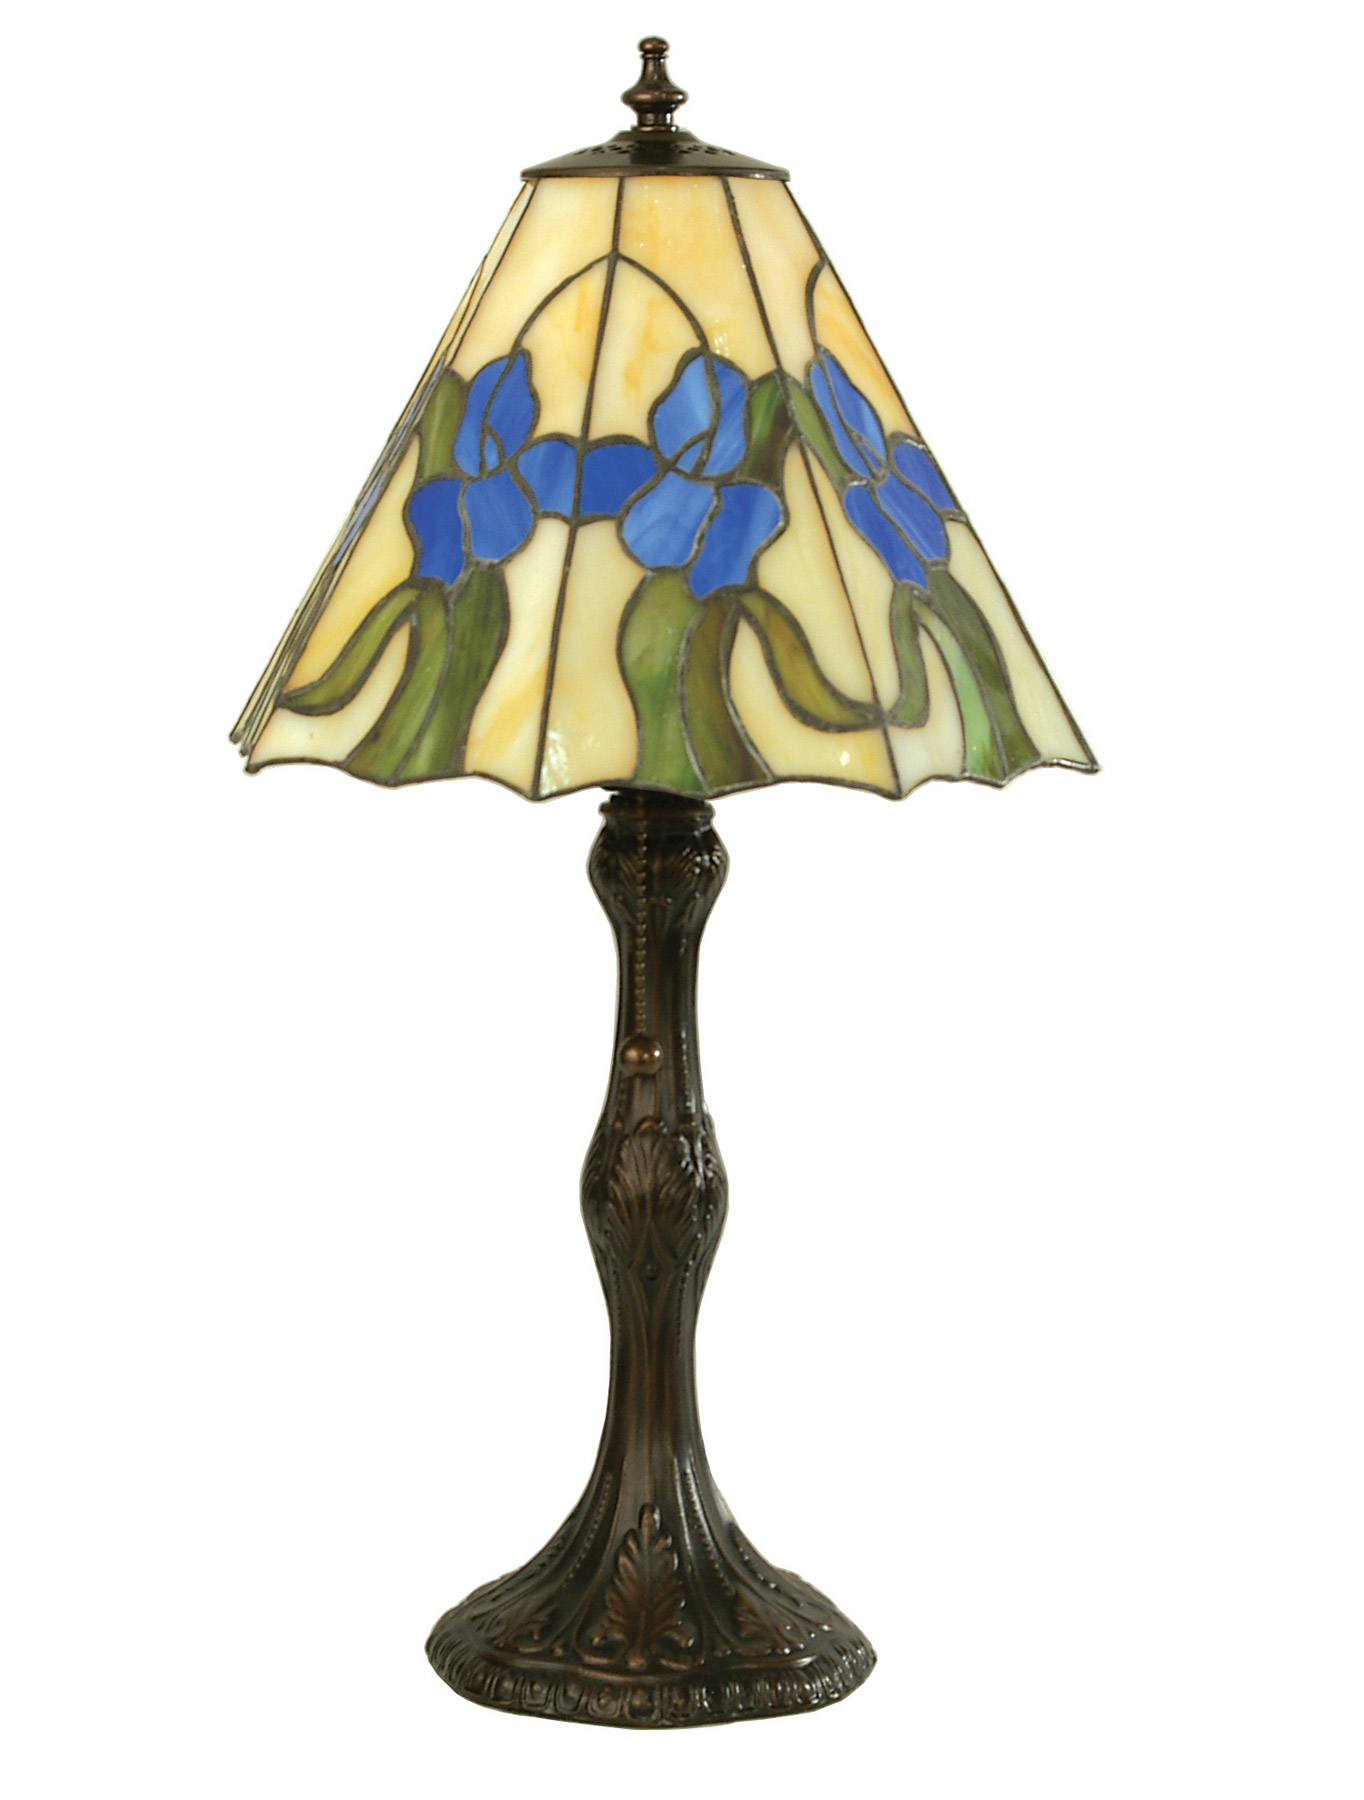 home lamps table lamps standard table lamps meyda 38139. Black Bedroom Furniture Sets. Home Design Ideas